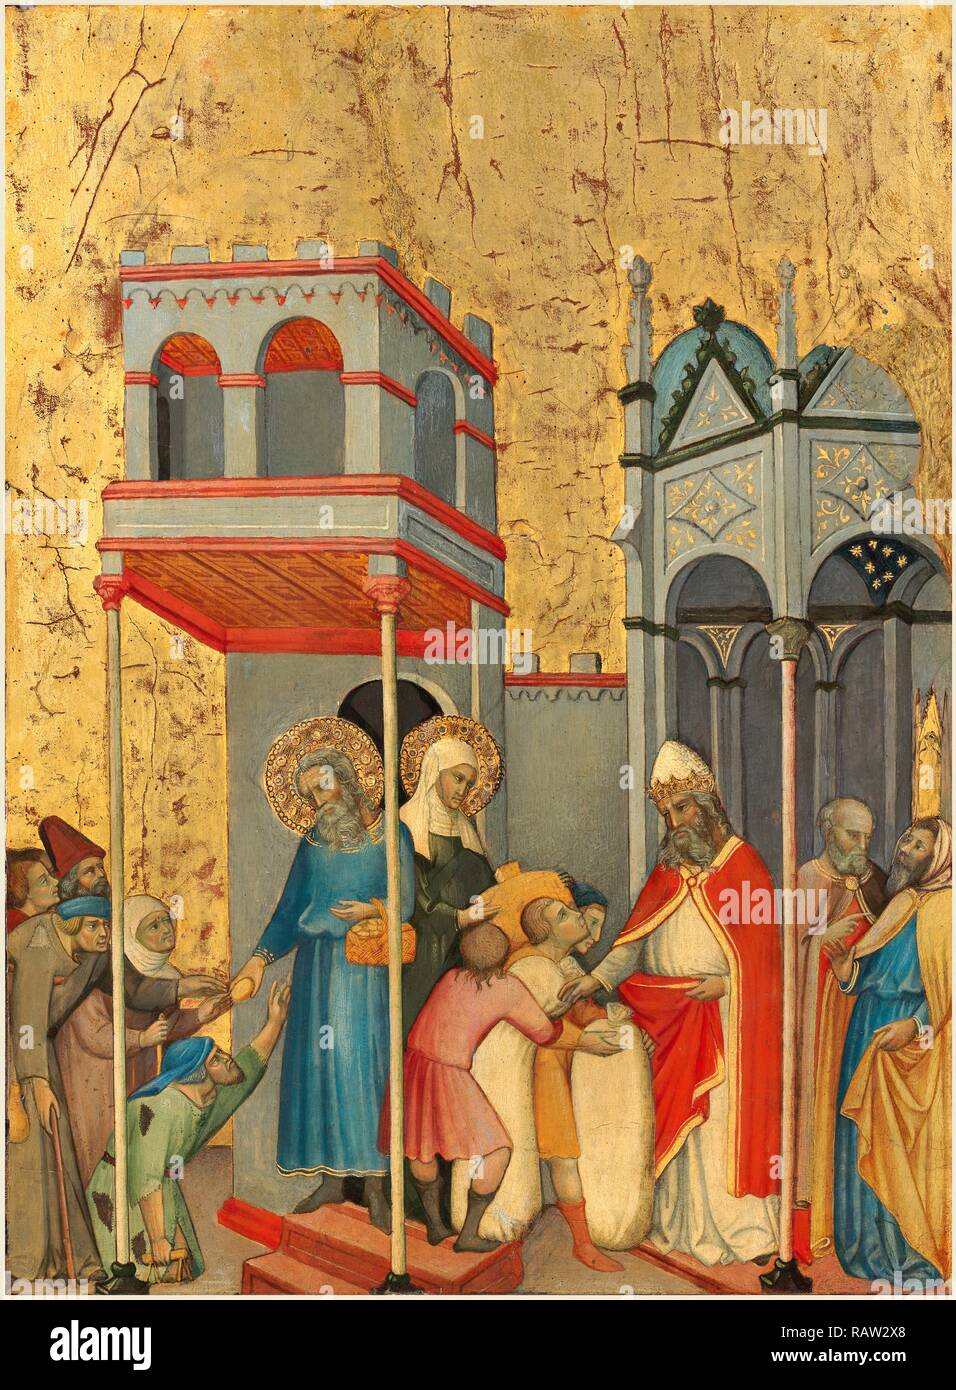 Andrea di Bartolo, Italian (documented from 1389-died 1428), Joachim and the Beggars, c. 1400, tempera on panel reimagined - Stock Image